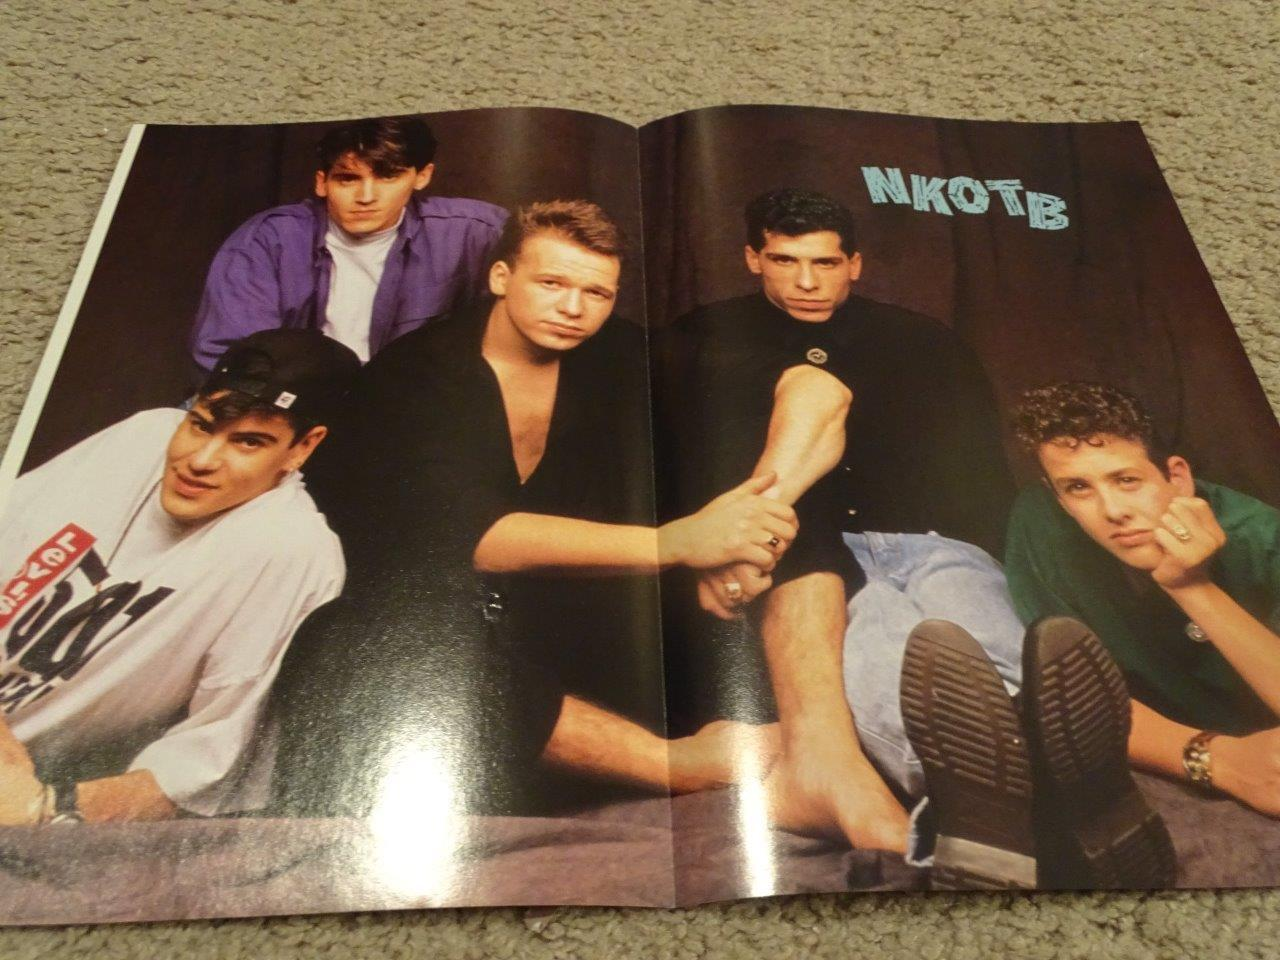 New Kids on the block teen magazine poster clipping double sided barefoot purple